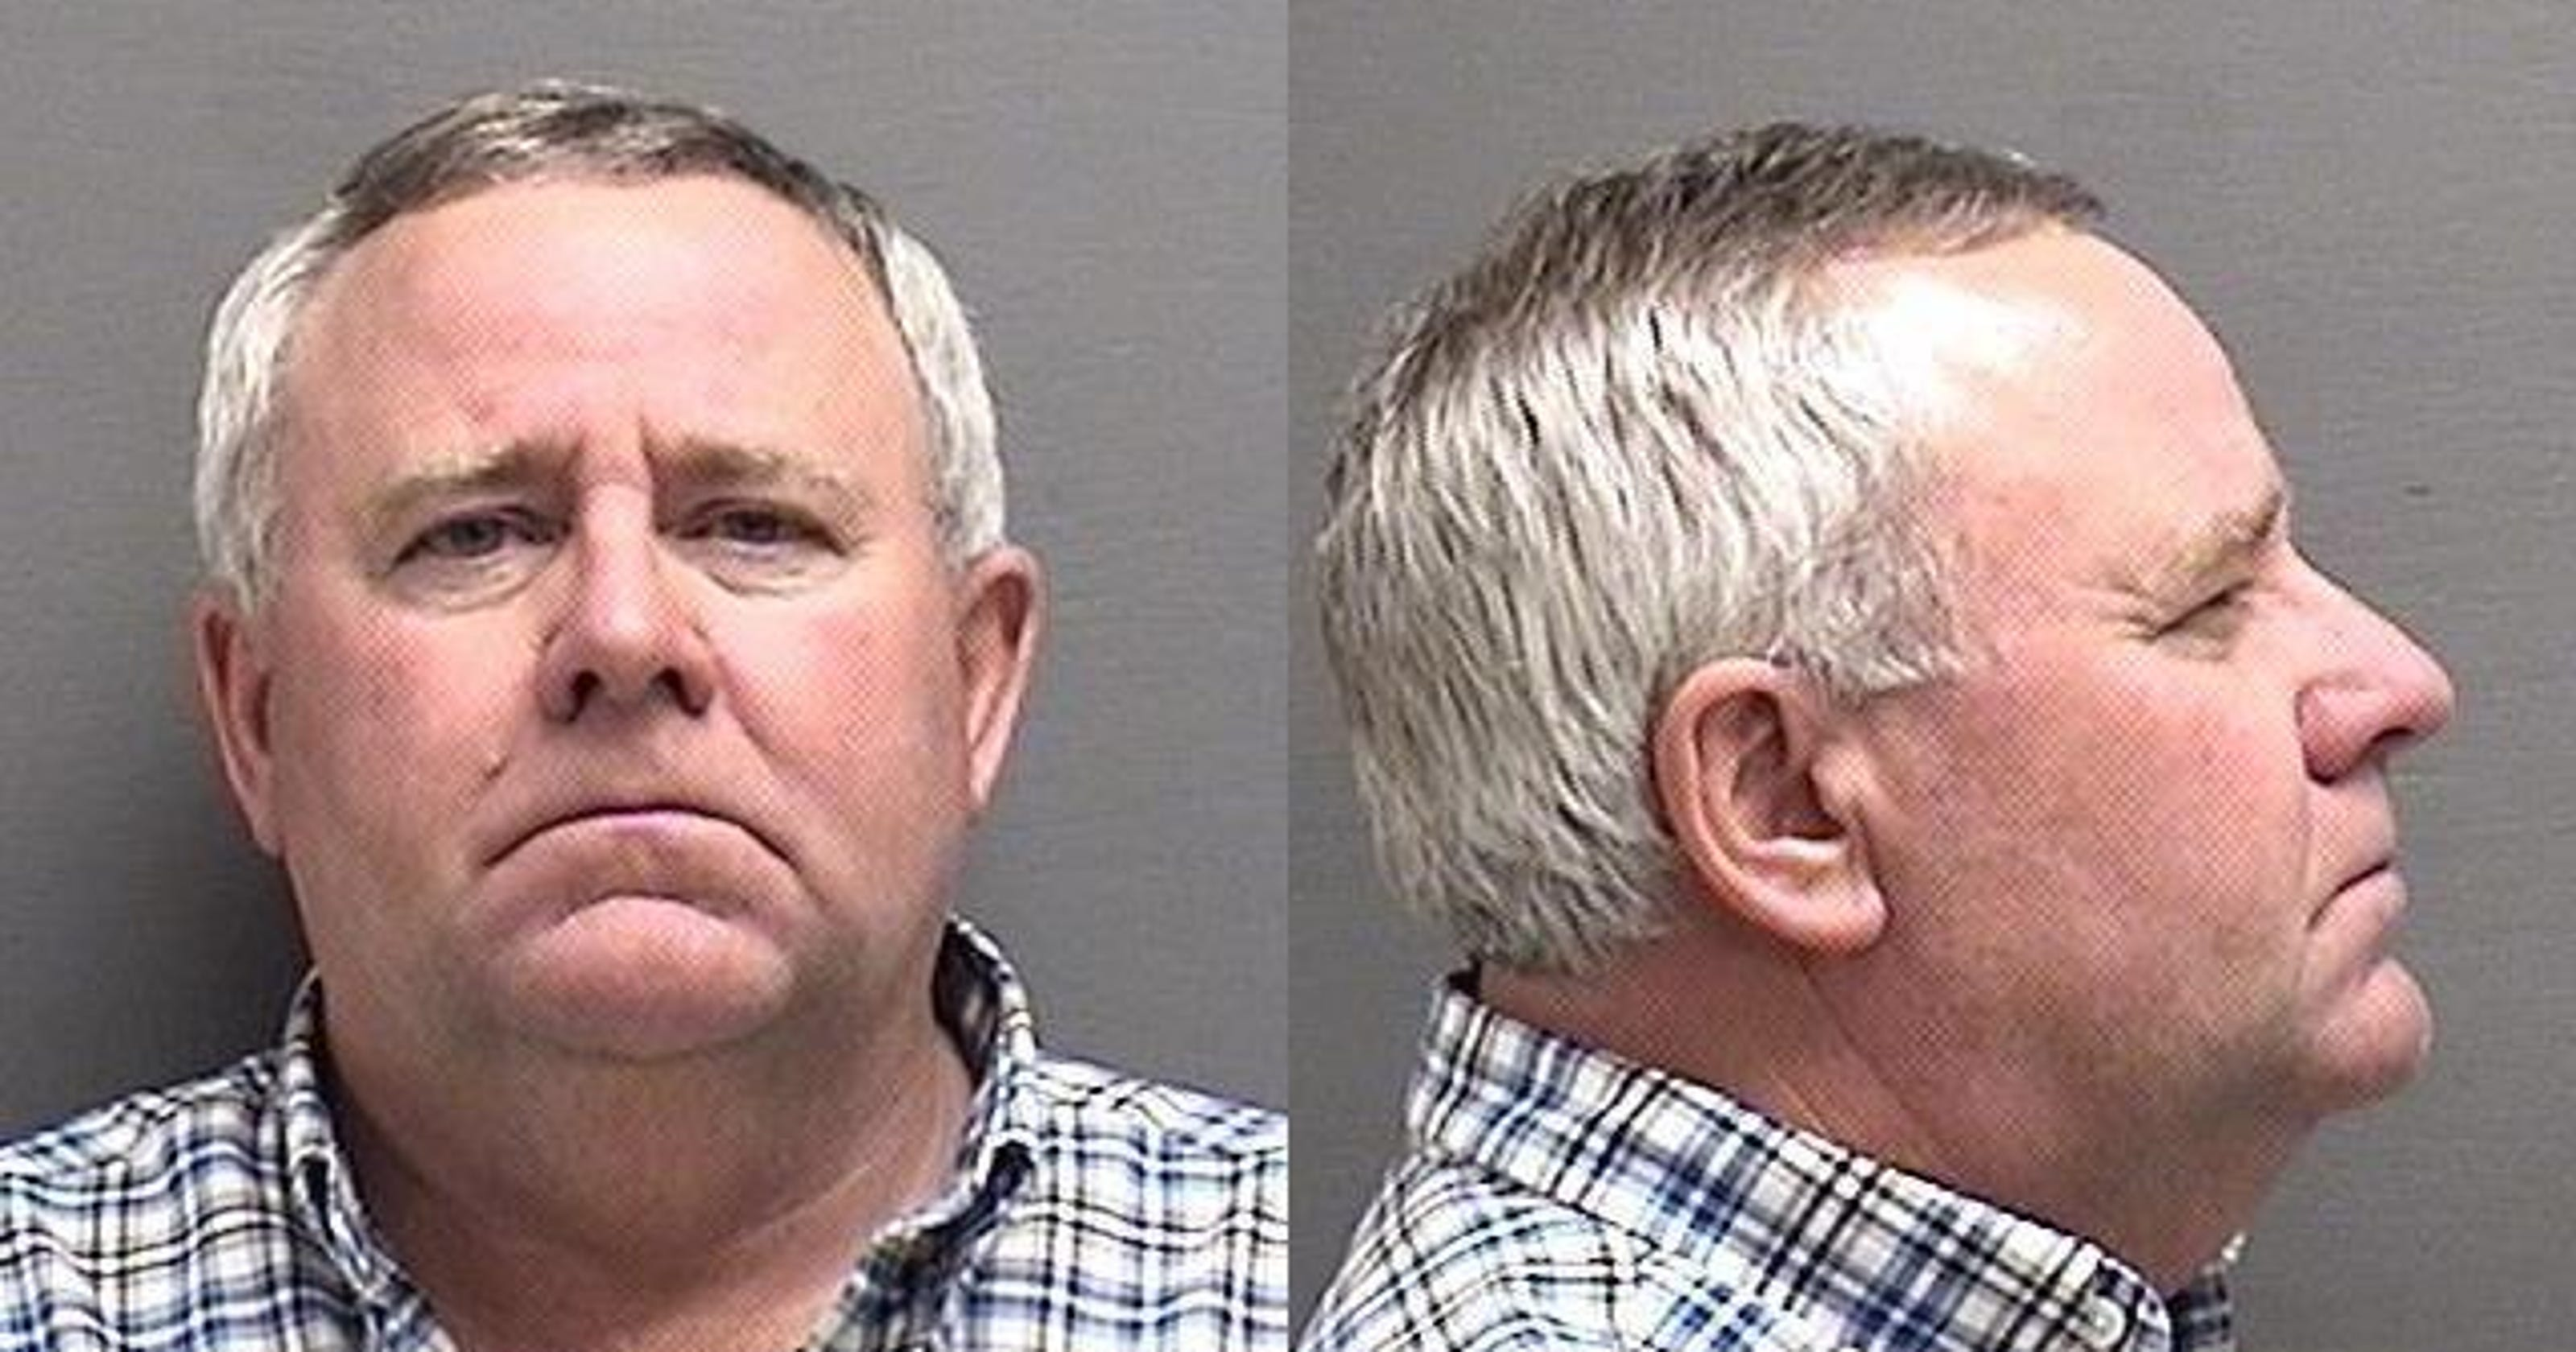 Man changes plea in sex sting operation case